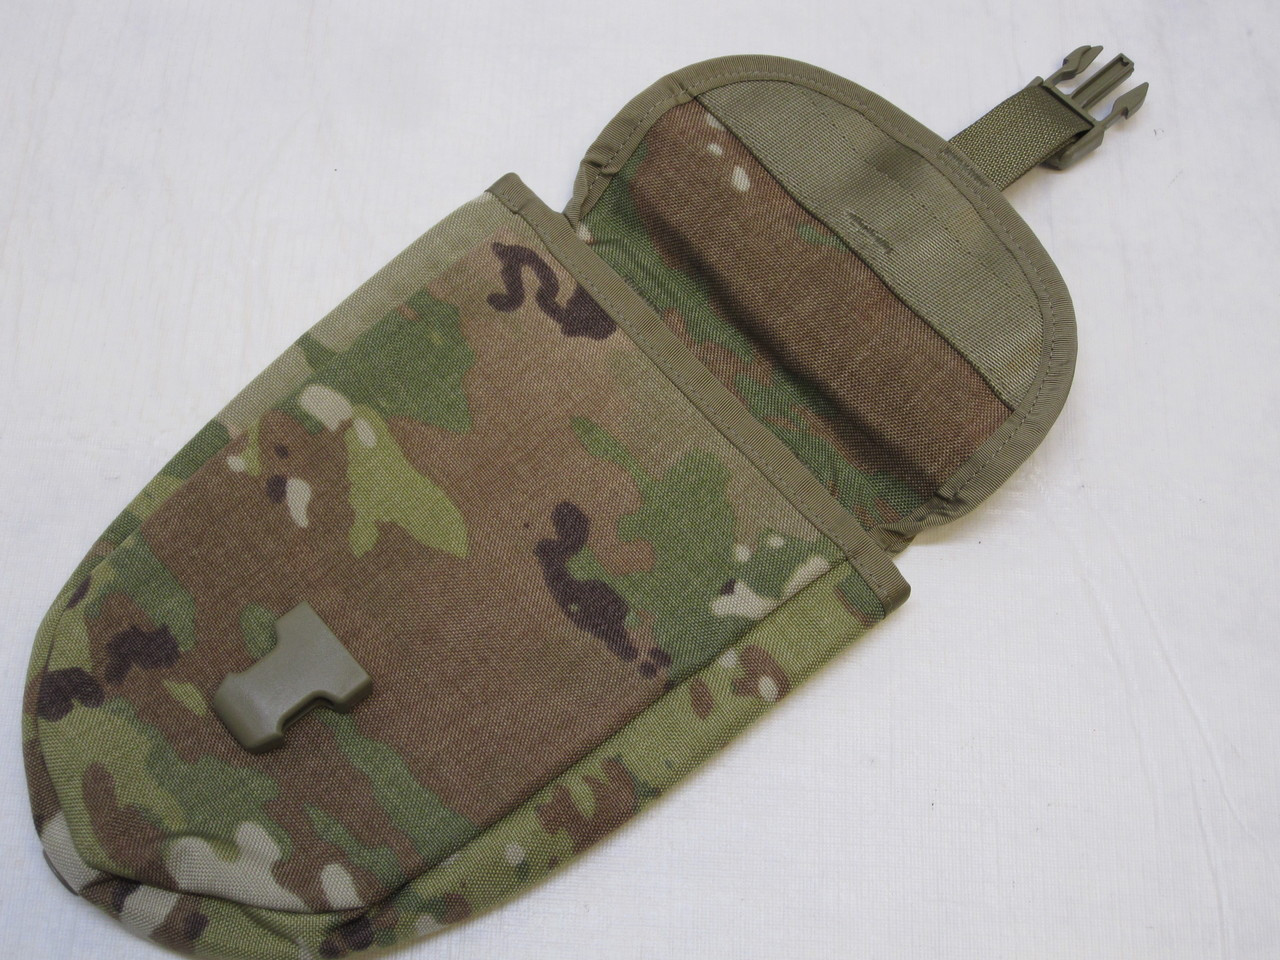 ARMY OCP SCORPION W2 E-TOOL MOLLE POUCH TRI-FOLD SHOVEL HOLDER ENTRENCHING